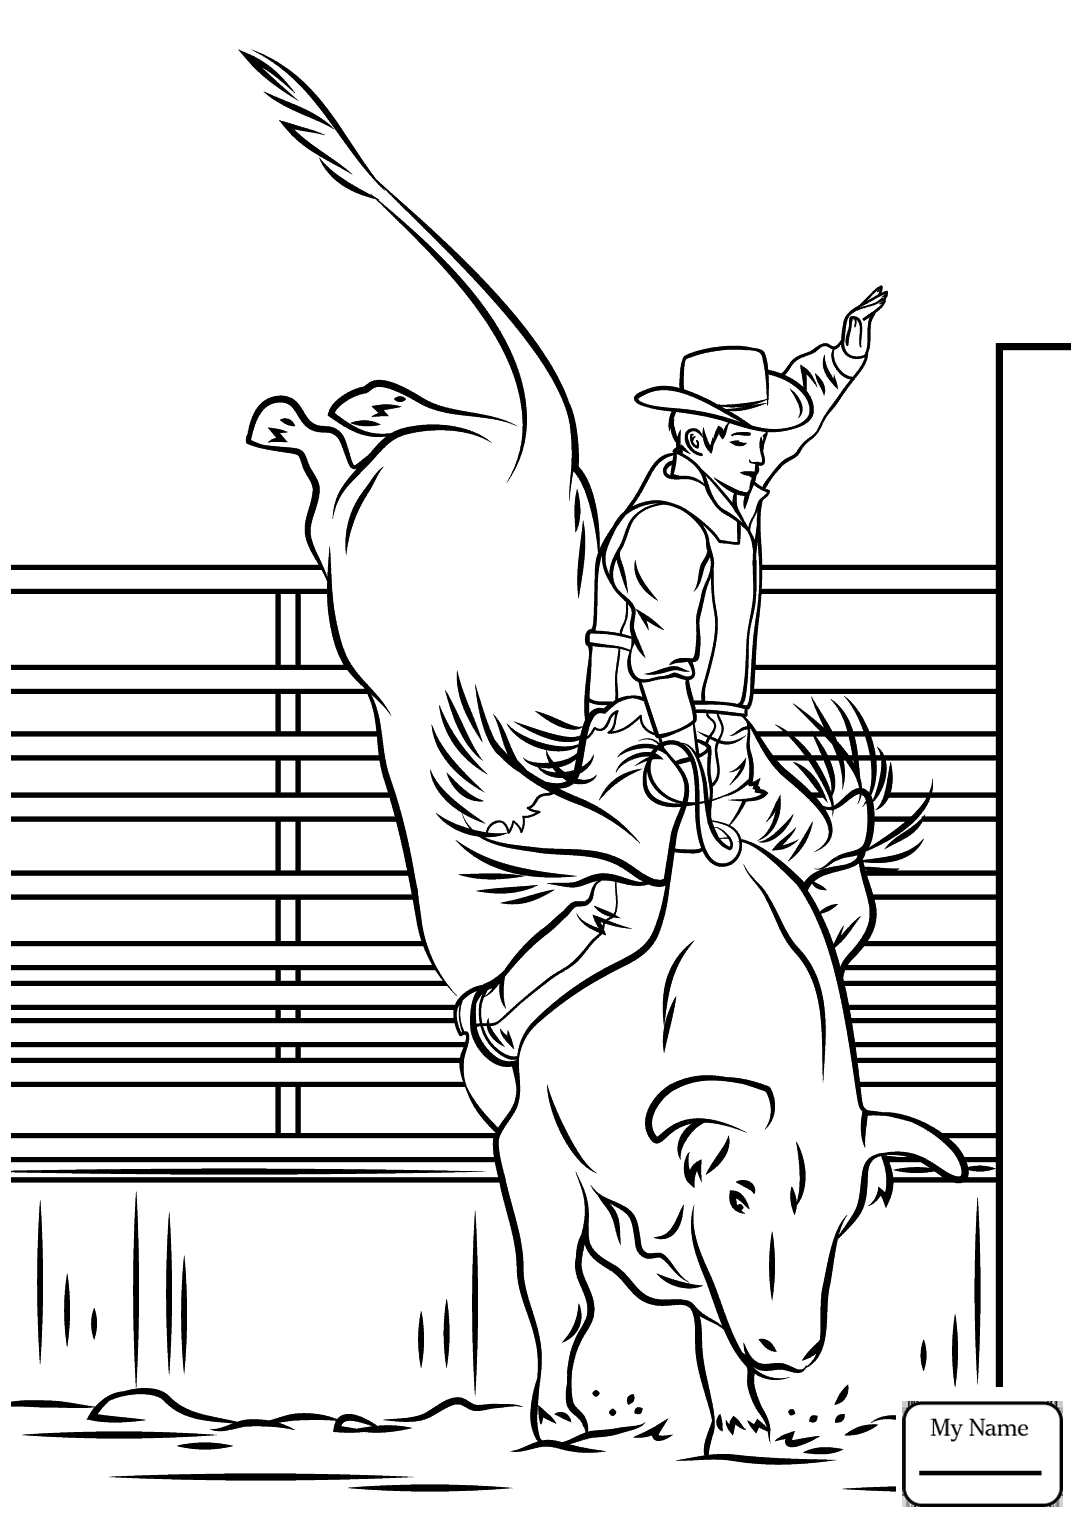 Rodeo Bull Drawing at GetDrawings.com | Free for personal use Rodeo ...